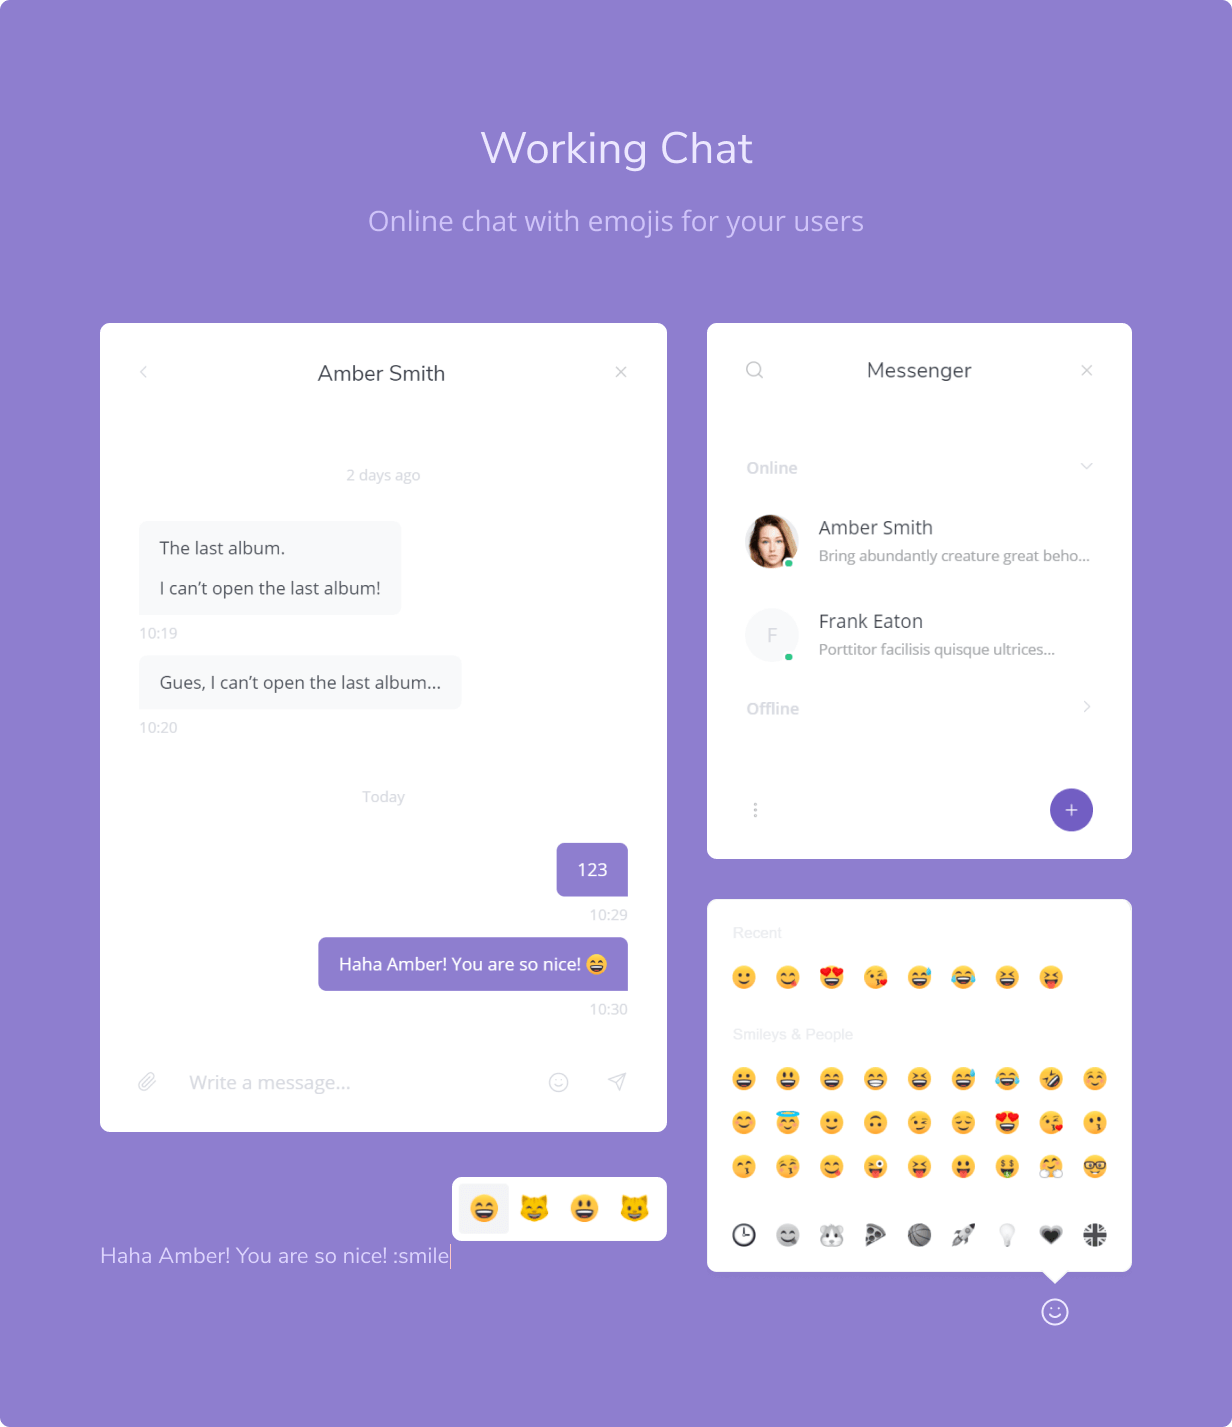 Working Chat